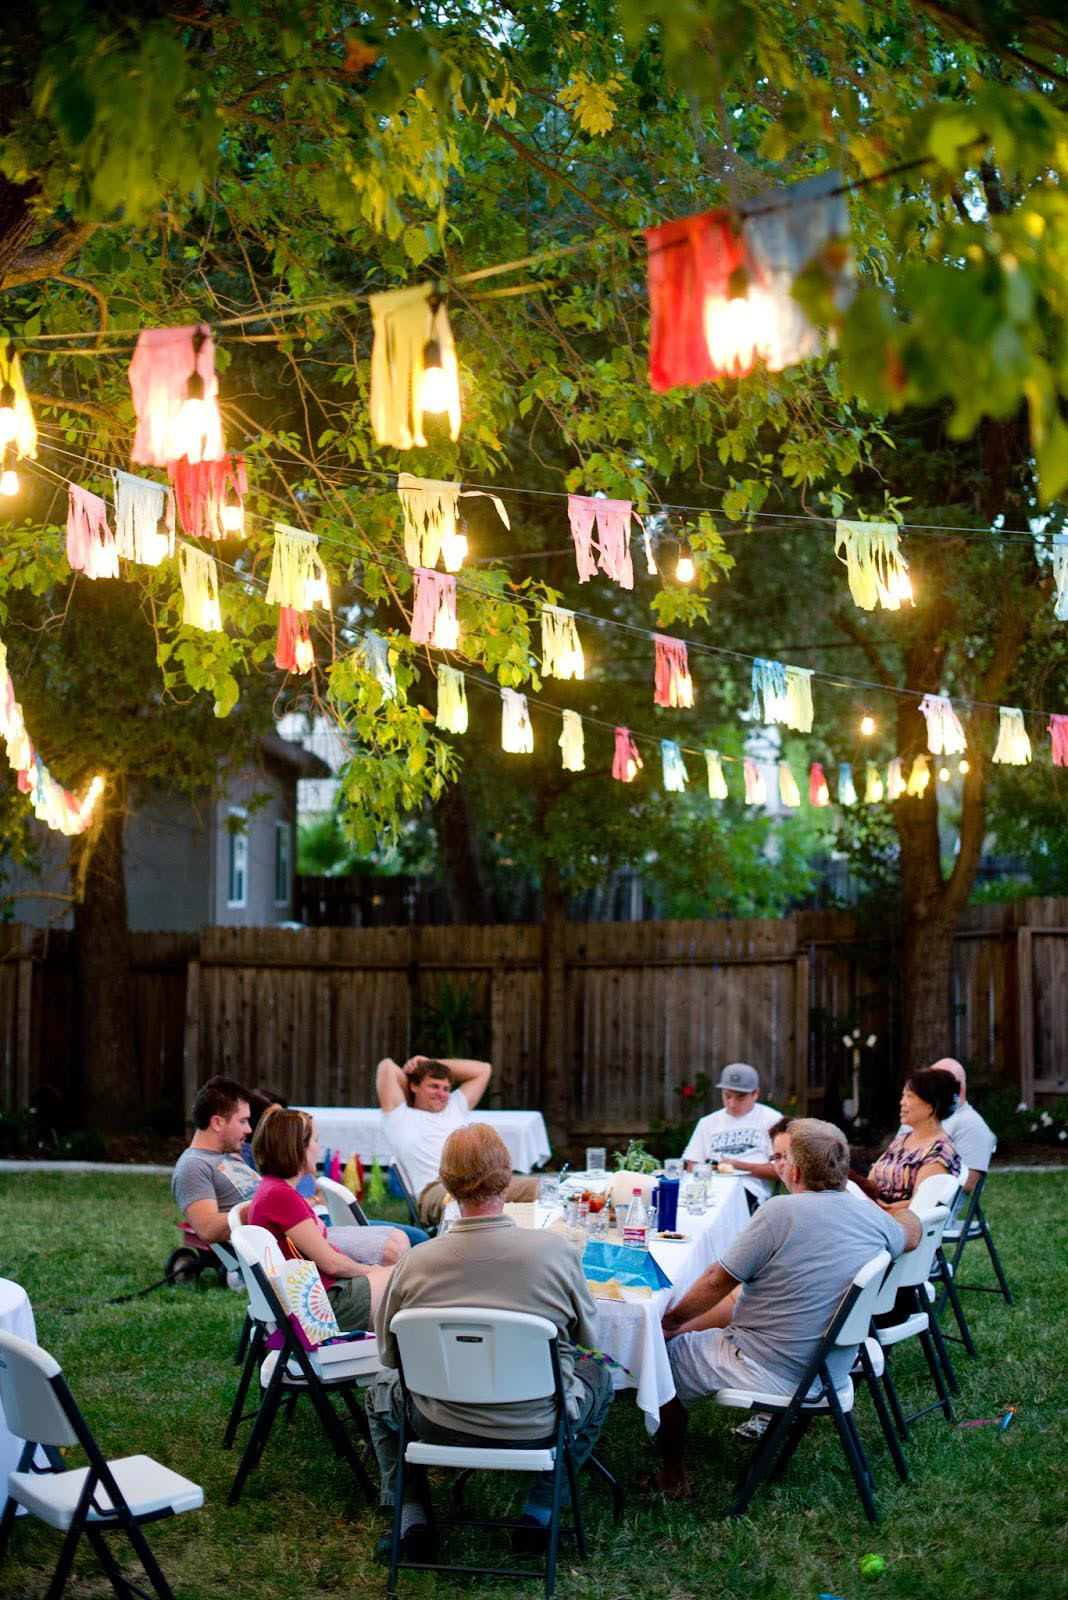 Some creative outdoor party games home party ideas for Adult birthday party decoration